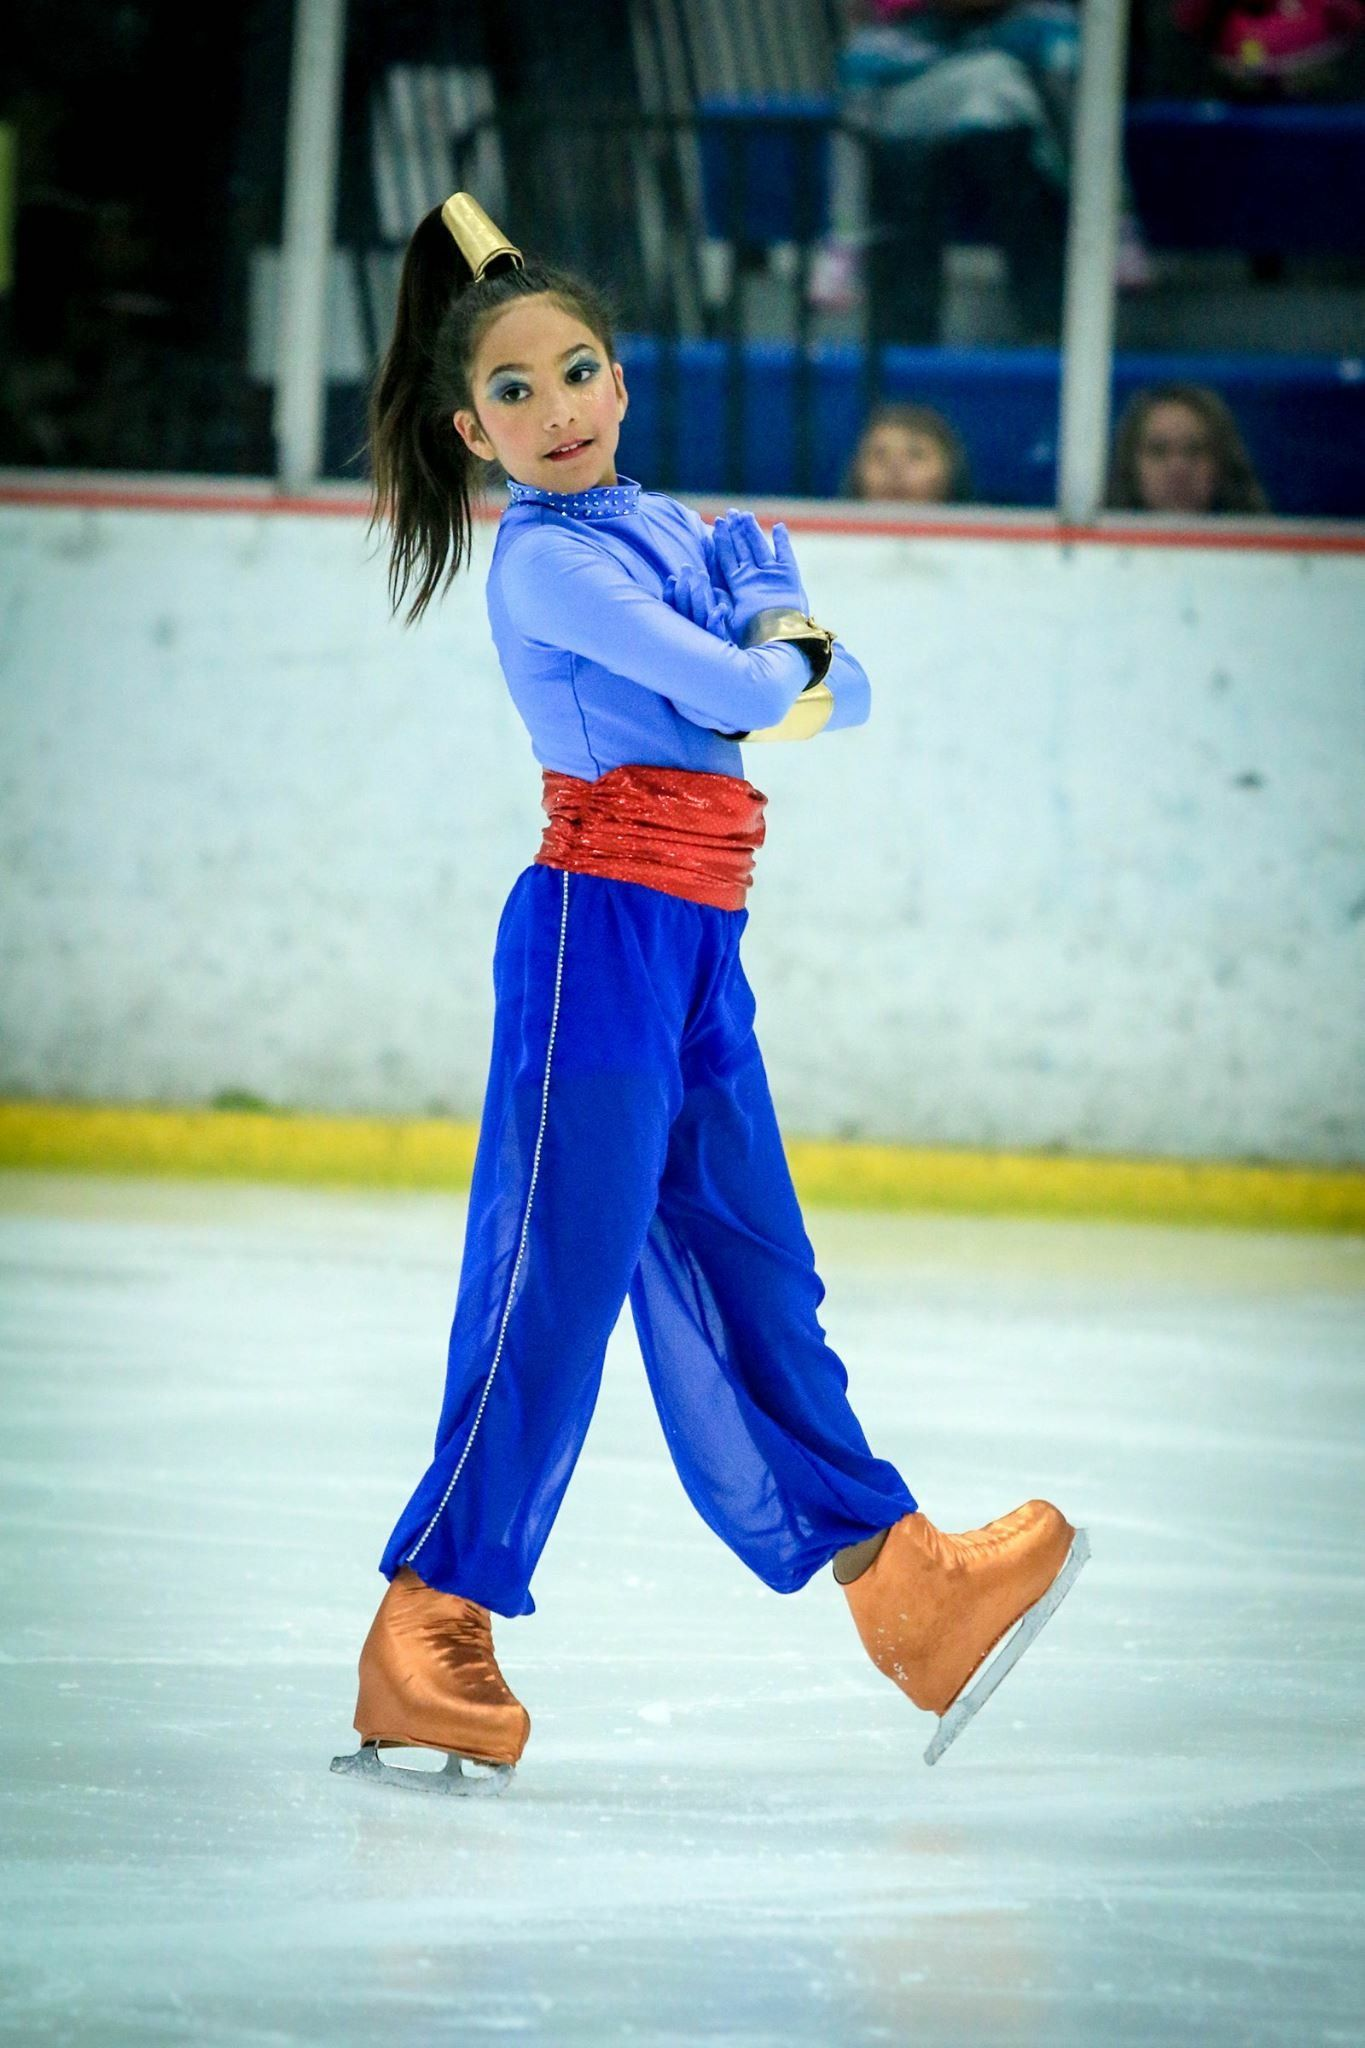 Aladdin's Genie costume for Showcase 2016. | Skate ...